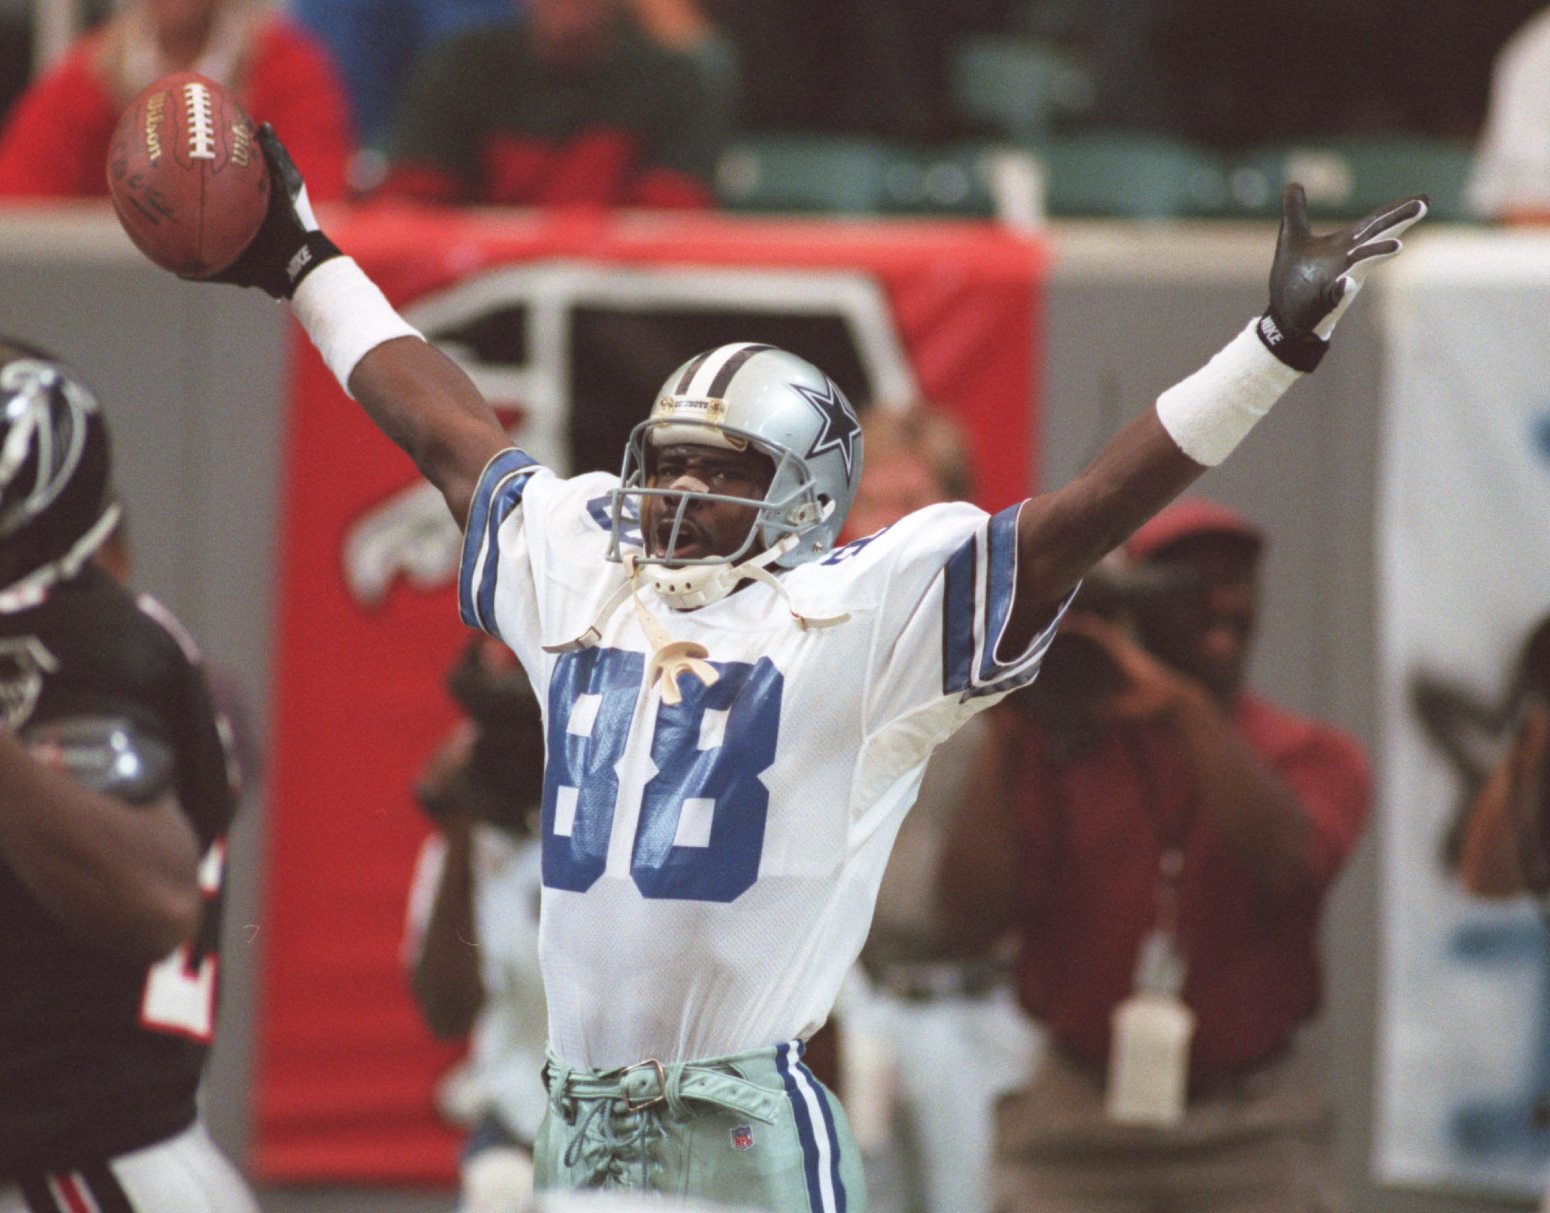 Michael Irvin became a Hall of Famer for the Dallas Cowboys. However, he could have went to a different team in the 1988 NFL draft.